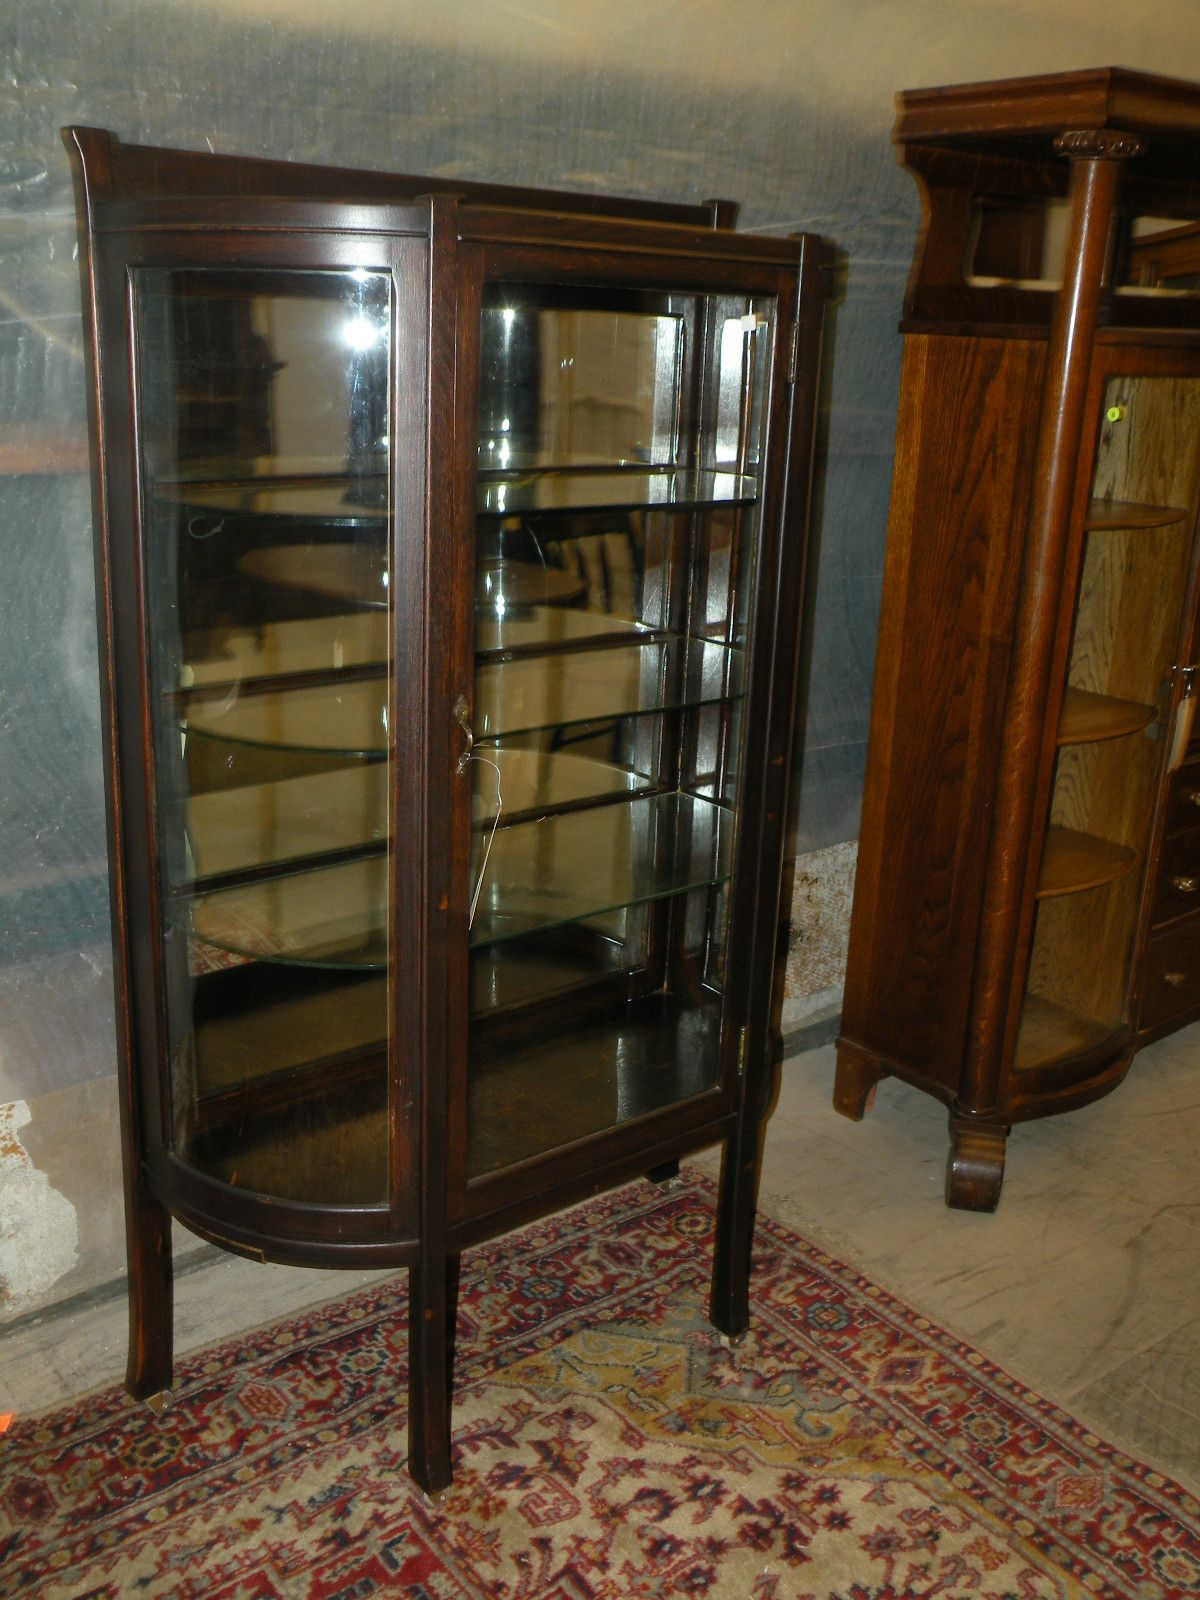 Antique Mission Oak Curved Glass Front Curio Display Cabinet | eBay - Antique Mission Oak Curved Glass Front Curio Display Cabinet